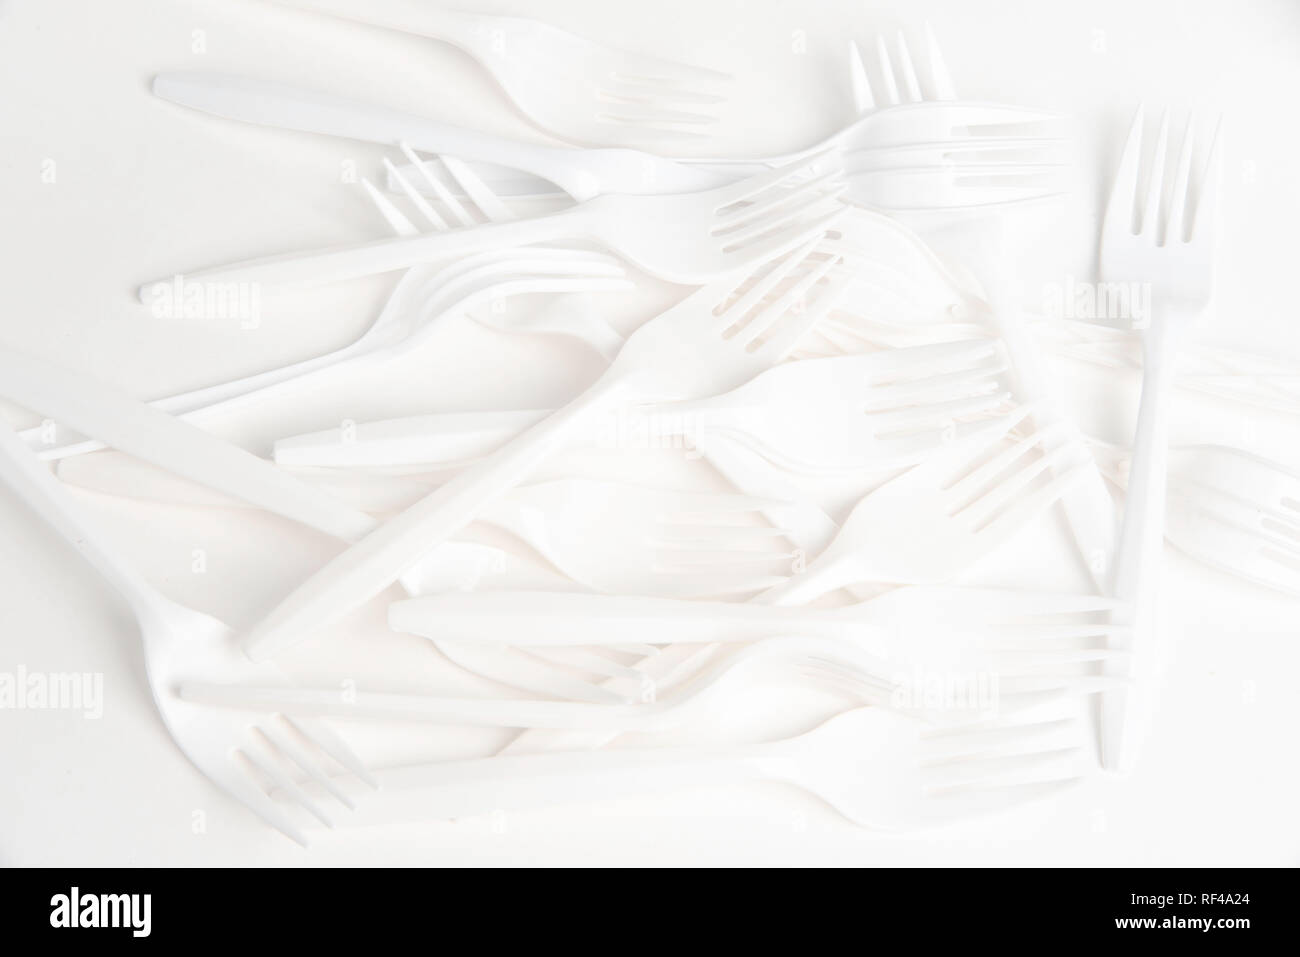 A bunch of white disposable single-use plastic forks commonly available all over the world. - Stock Image